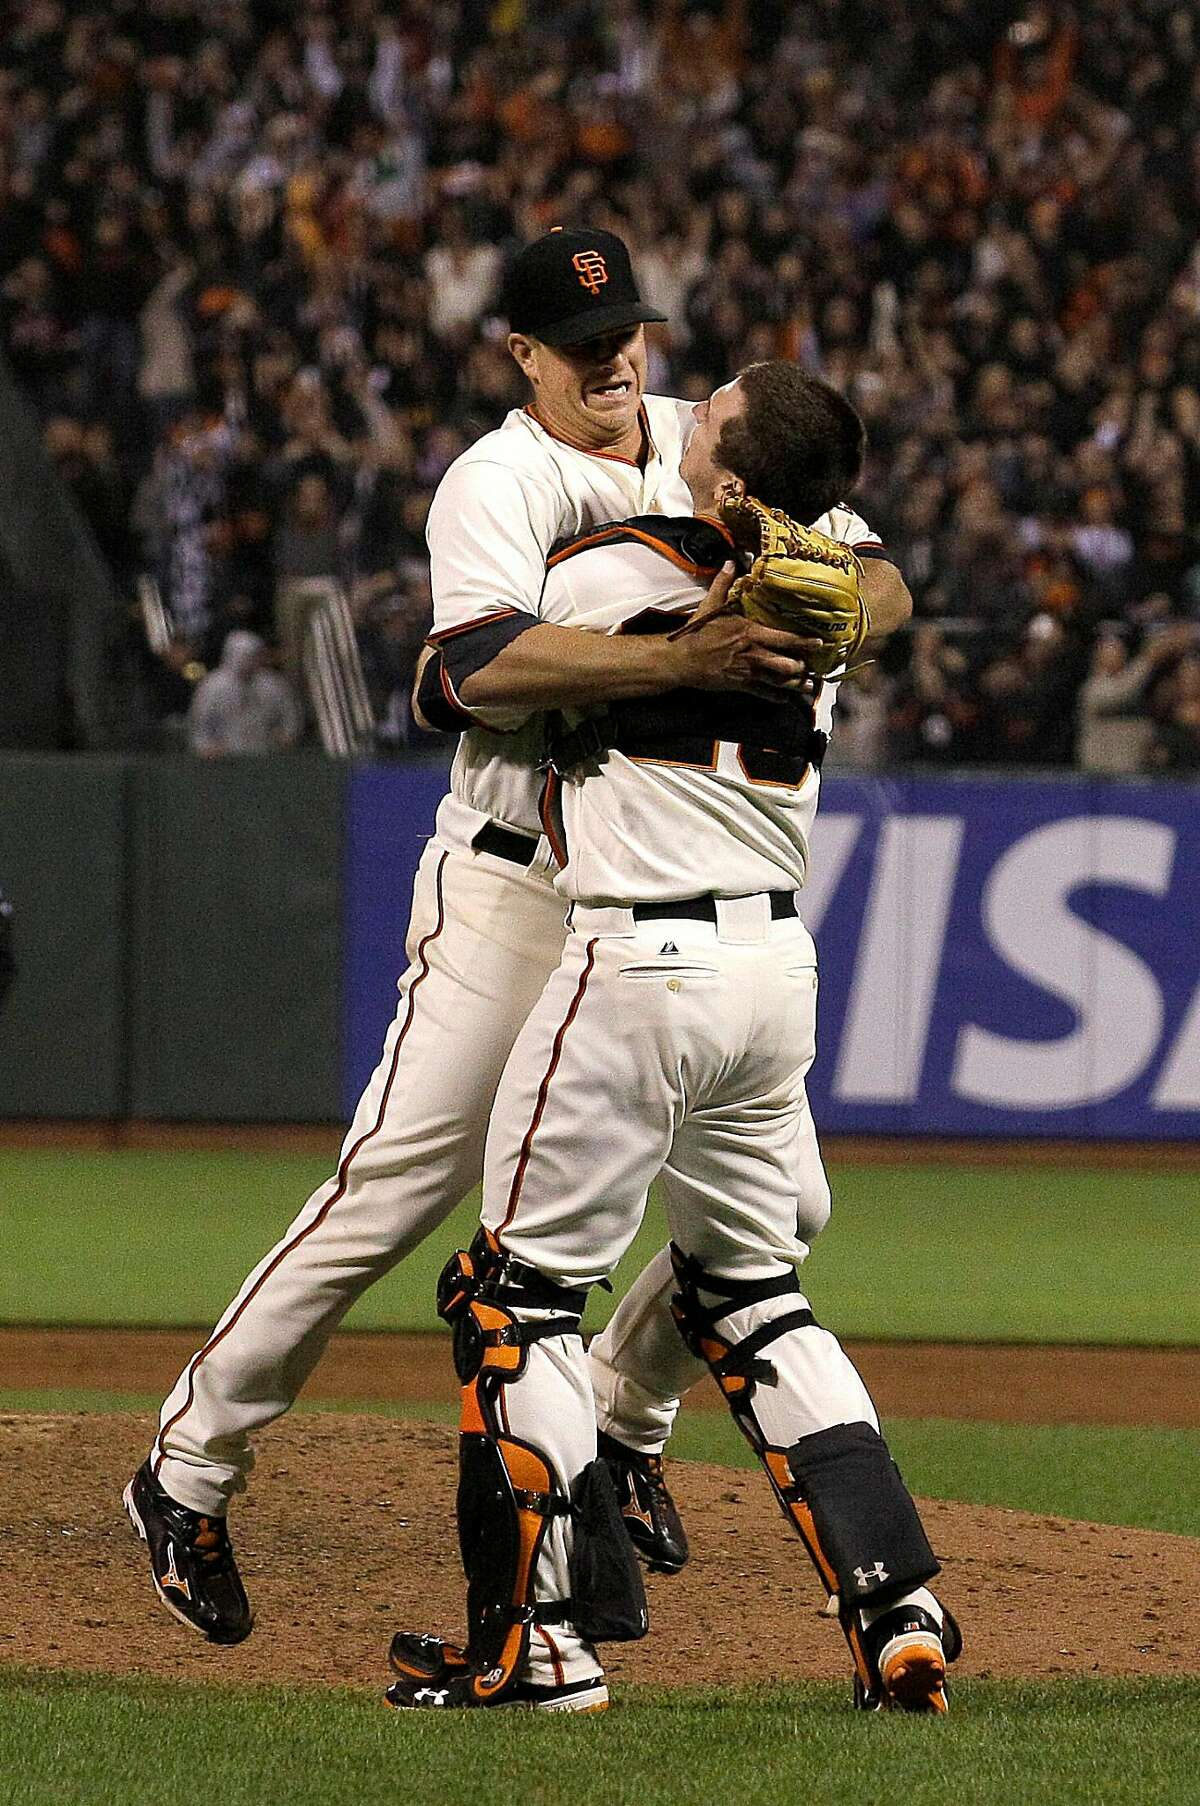 San Francisco Giants pitcher Matt Cain, left, celebrates with catcher Buster Posey after the final out of the ninth inning of a baseball game against the Houston Astros in San Francisco, Wednesday, June 13, 2012. Cain pitched the 22nd perfect game in major league history and first for the Giants, striking out a career-high 14 and getting help from two spectacular catches to beat the Houston Astros 10-0. (AP Photo/Jeff Chiu)